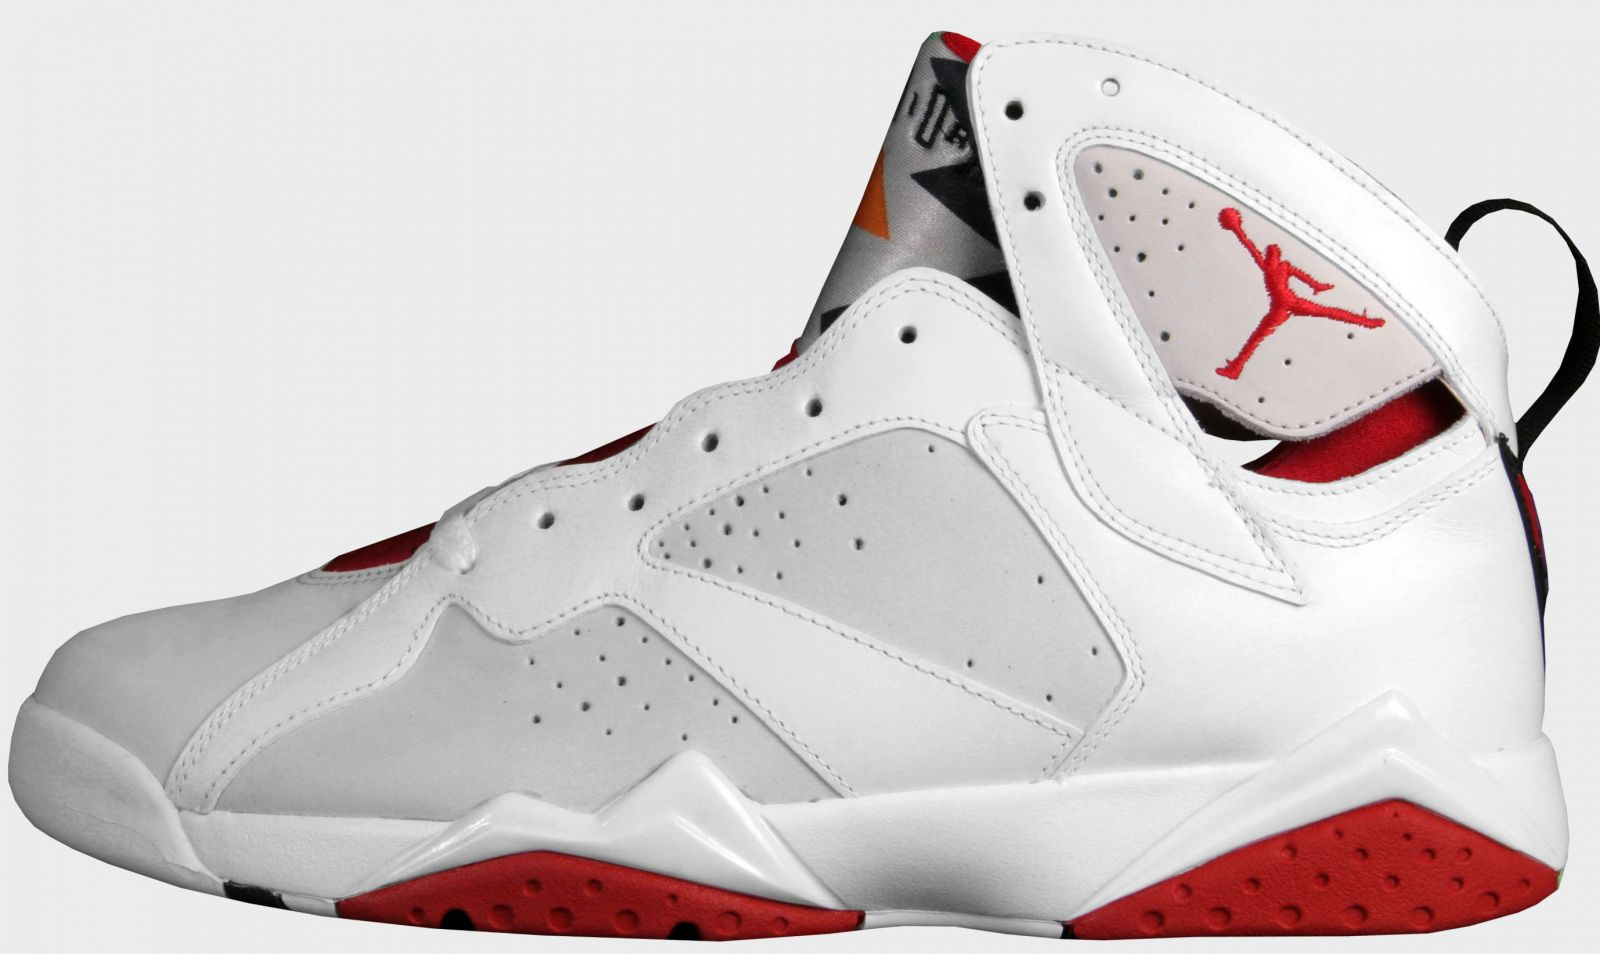 jordan shoes logo red and white triangles sign 808359